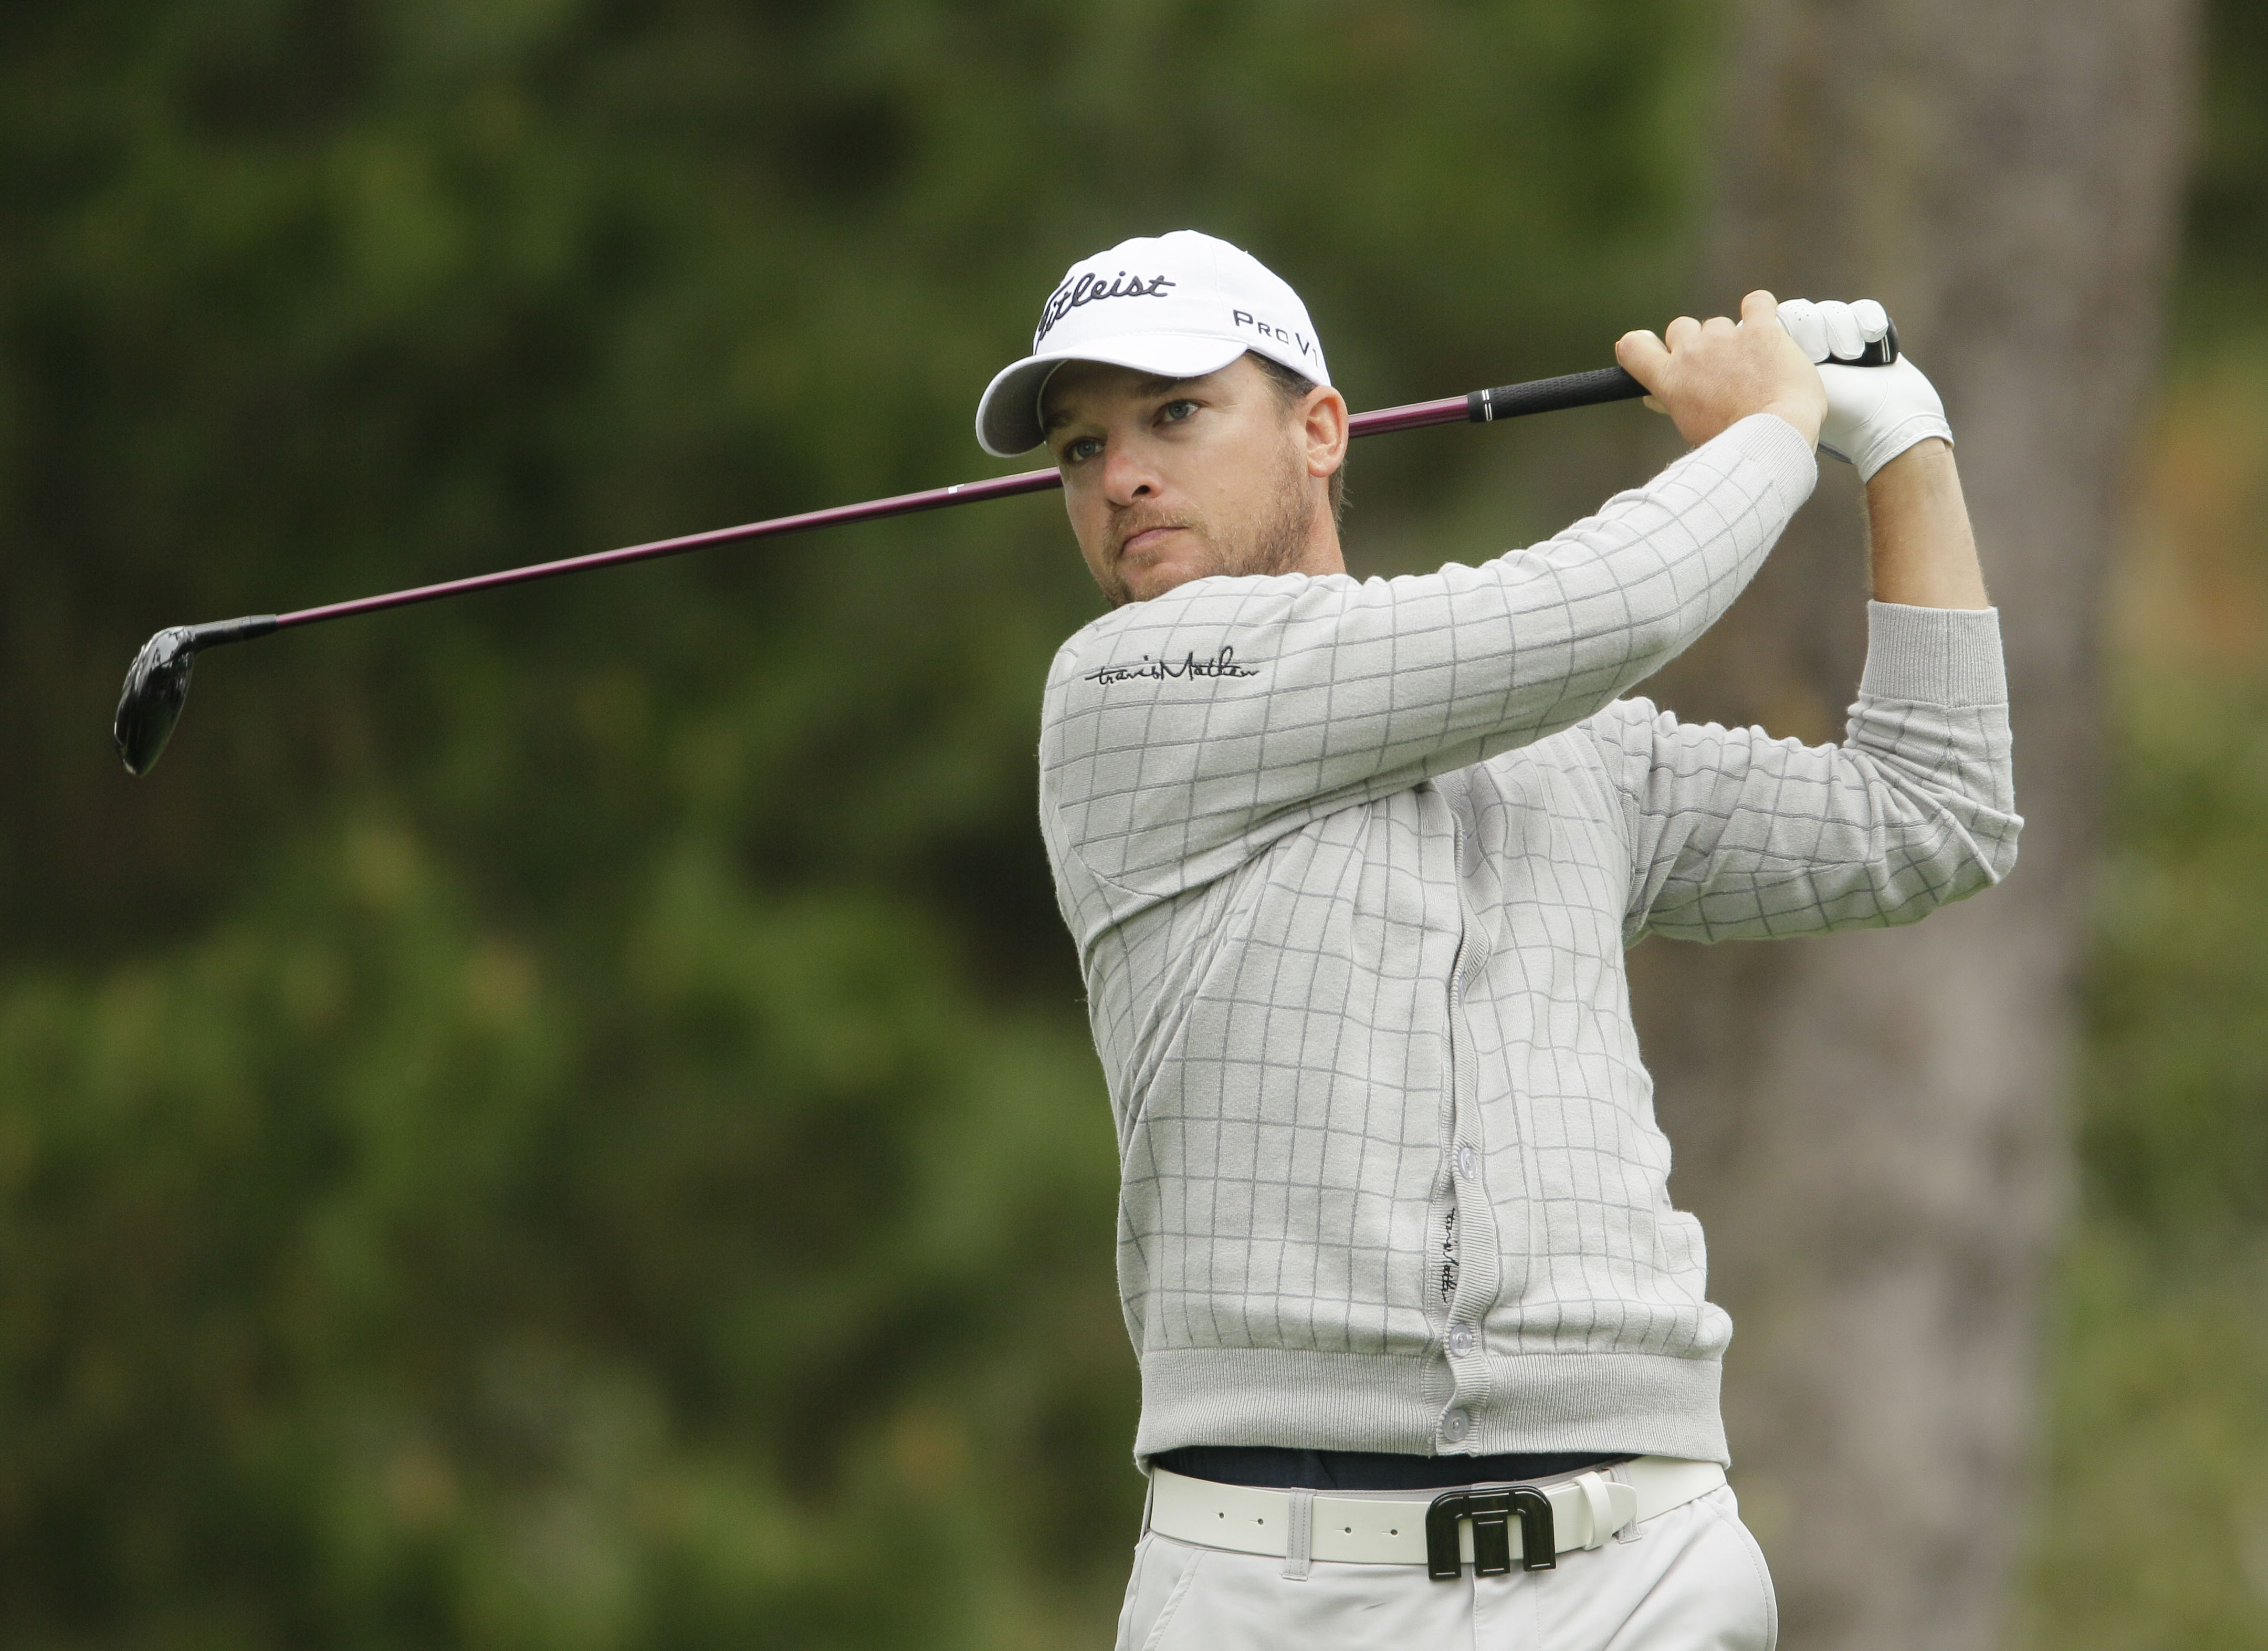 Kyle Thompson on the Spyglass Hill Golf Course during the second round of the AT&T Pebble Beach National Pro-Am PGA Tour golf tournament in Pebble Beach, Calif., Friday, Feb. 10, 2012. (AP Photo/Eric Risberg)